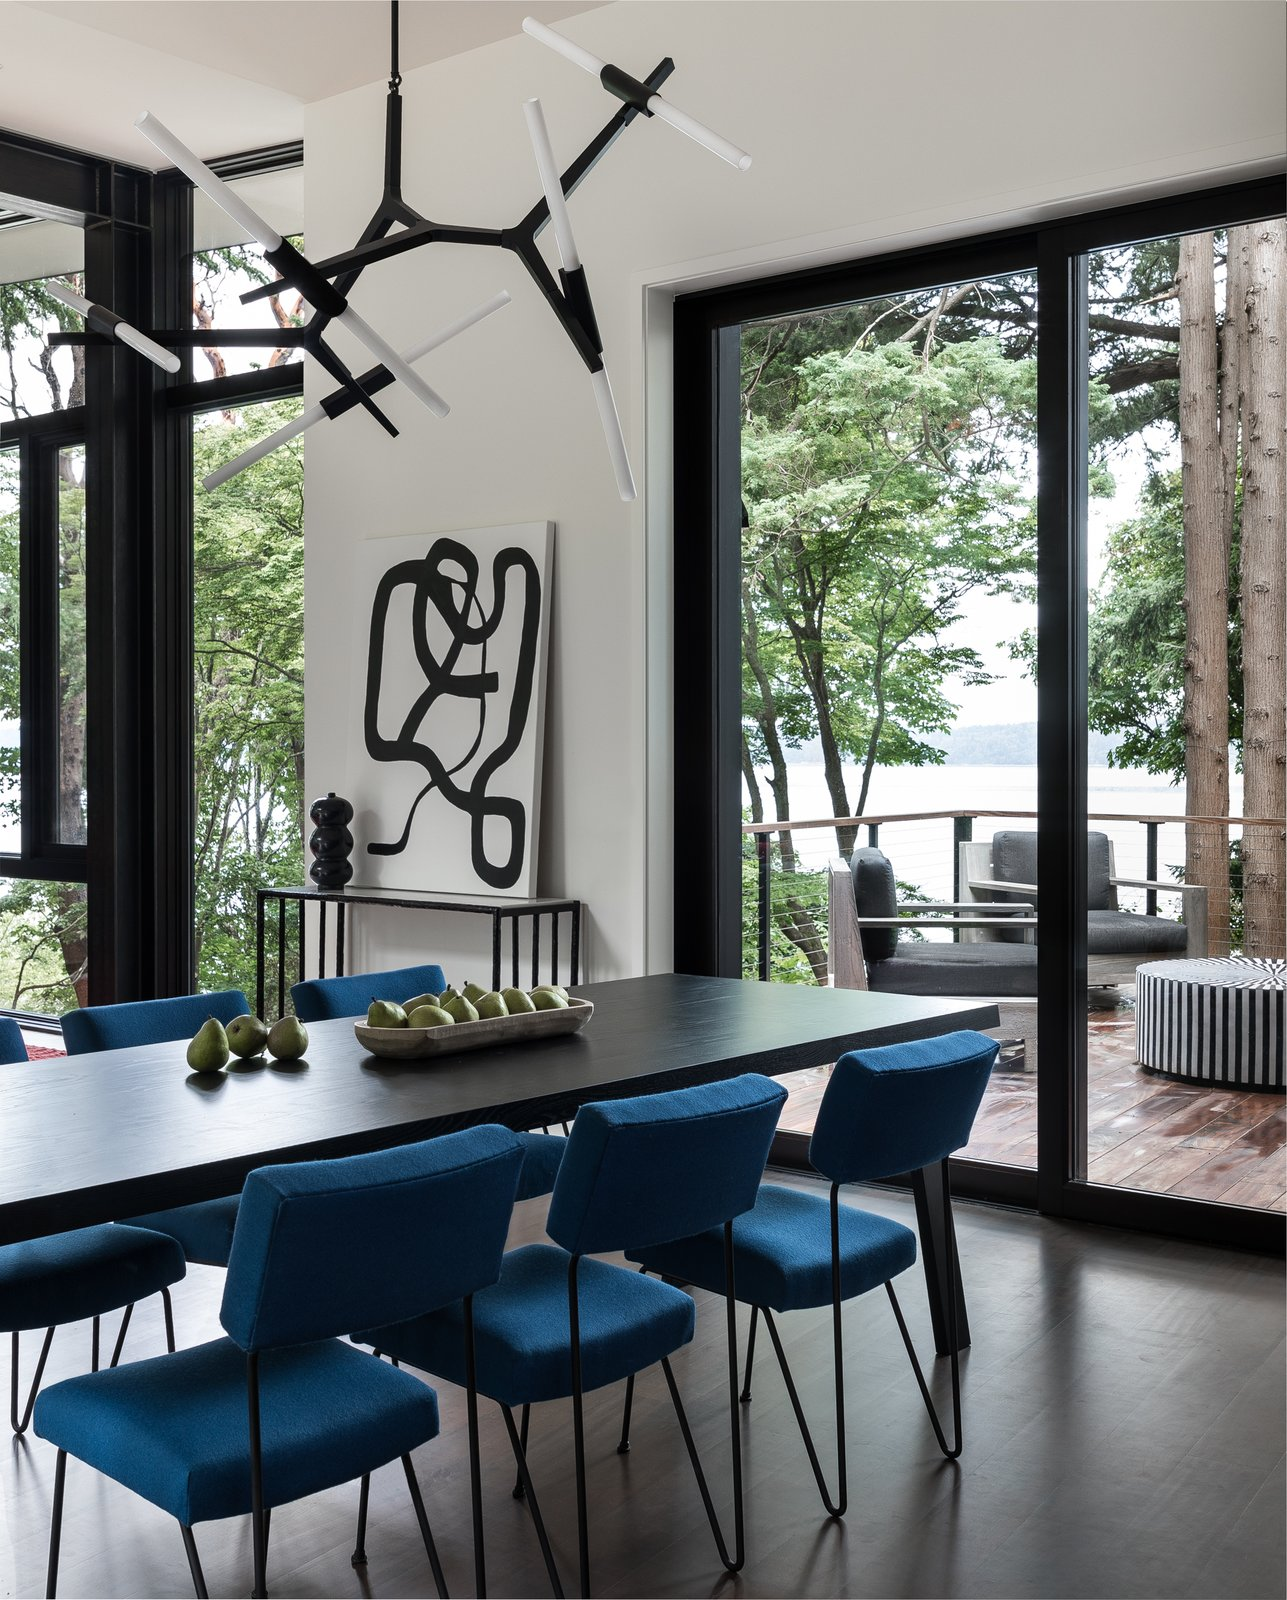 Dining Room, Accent Lighting, Table, Dark Hardwood Floor, and Chair Dining Room  Tree House by DeForest Architects